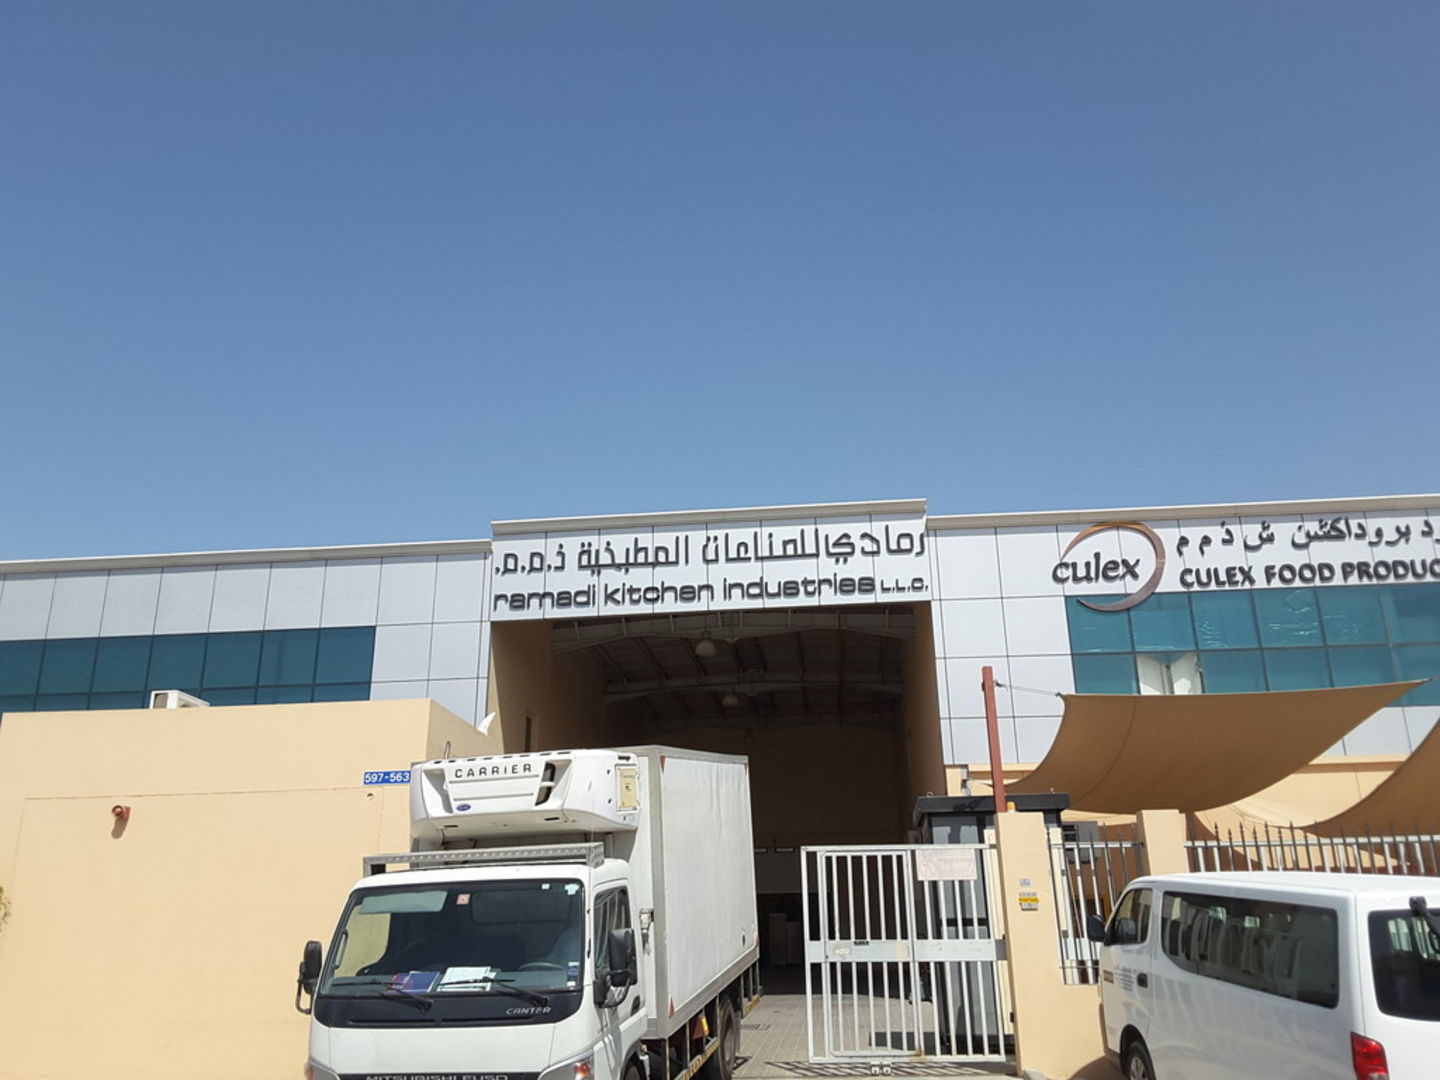 HiDubai-business-ramadi-kitchen-industries-construction-heavy-industries-chemical-metal-companies-dubai-investment-park-2-dubai-2